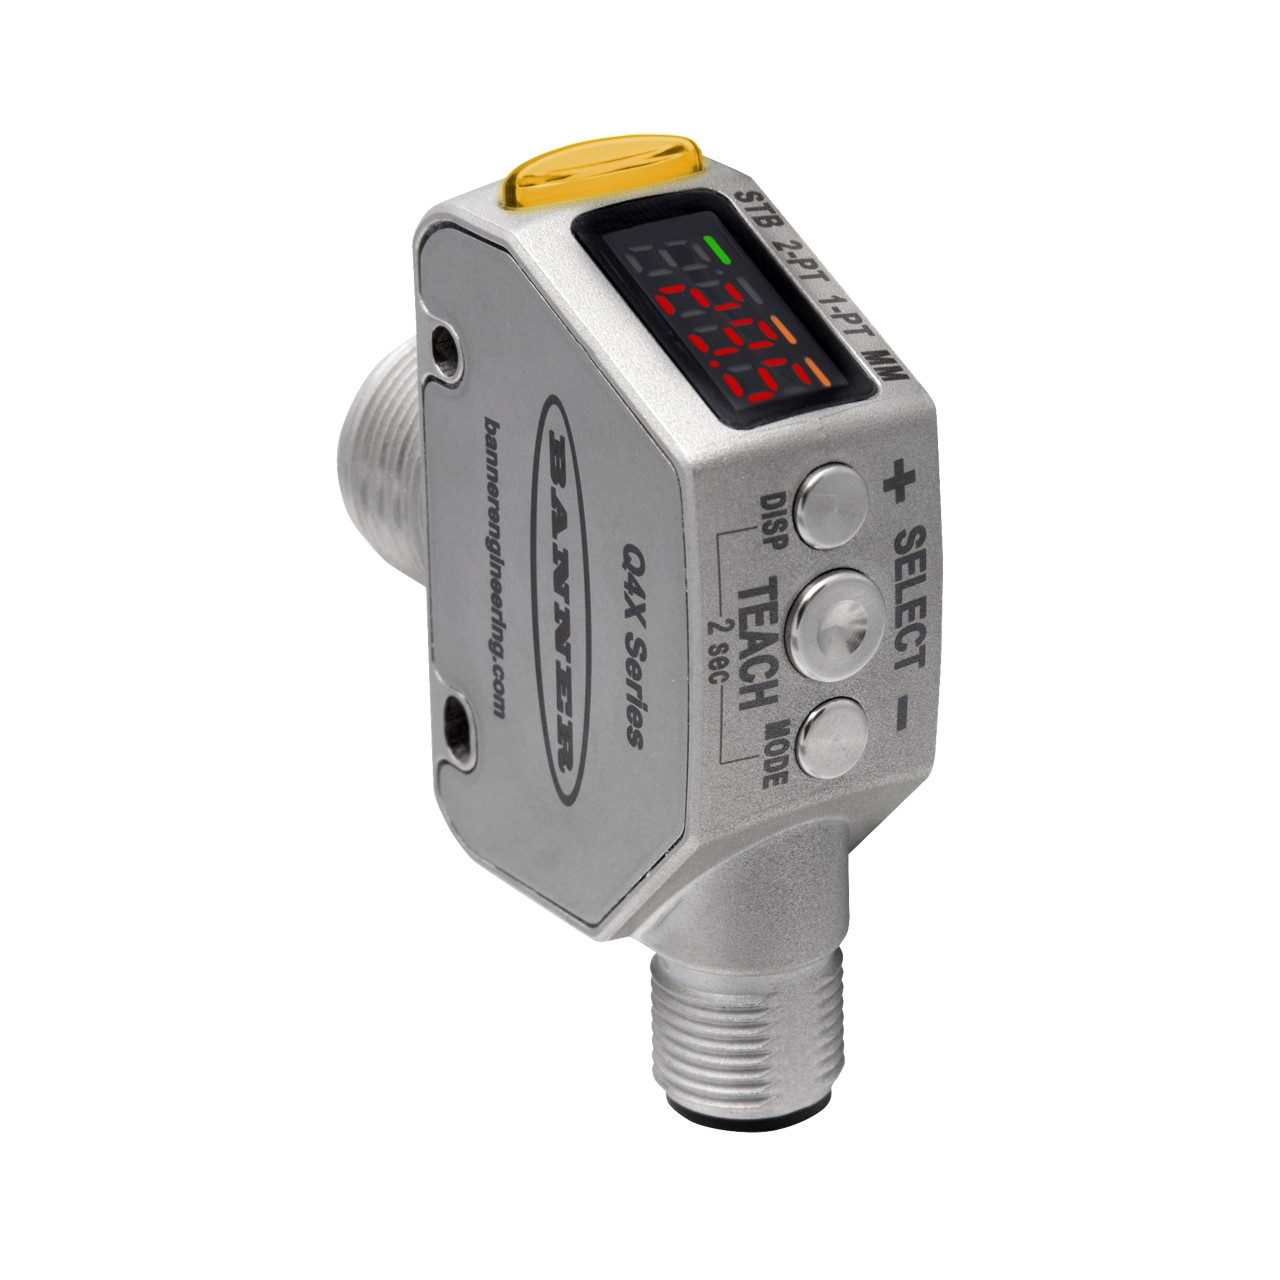 Q4X laser measurement sensor